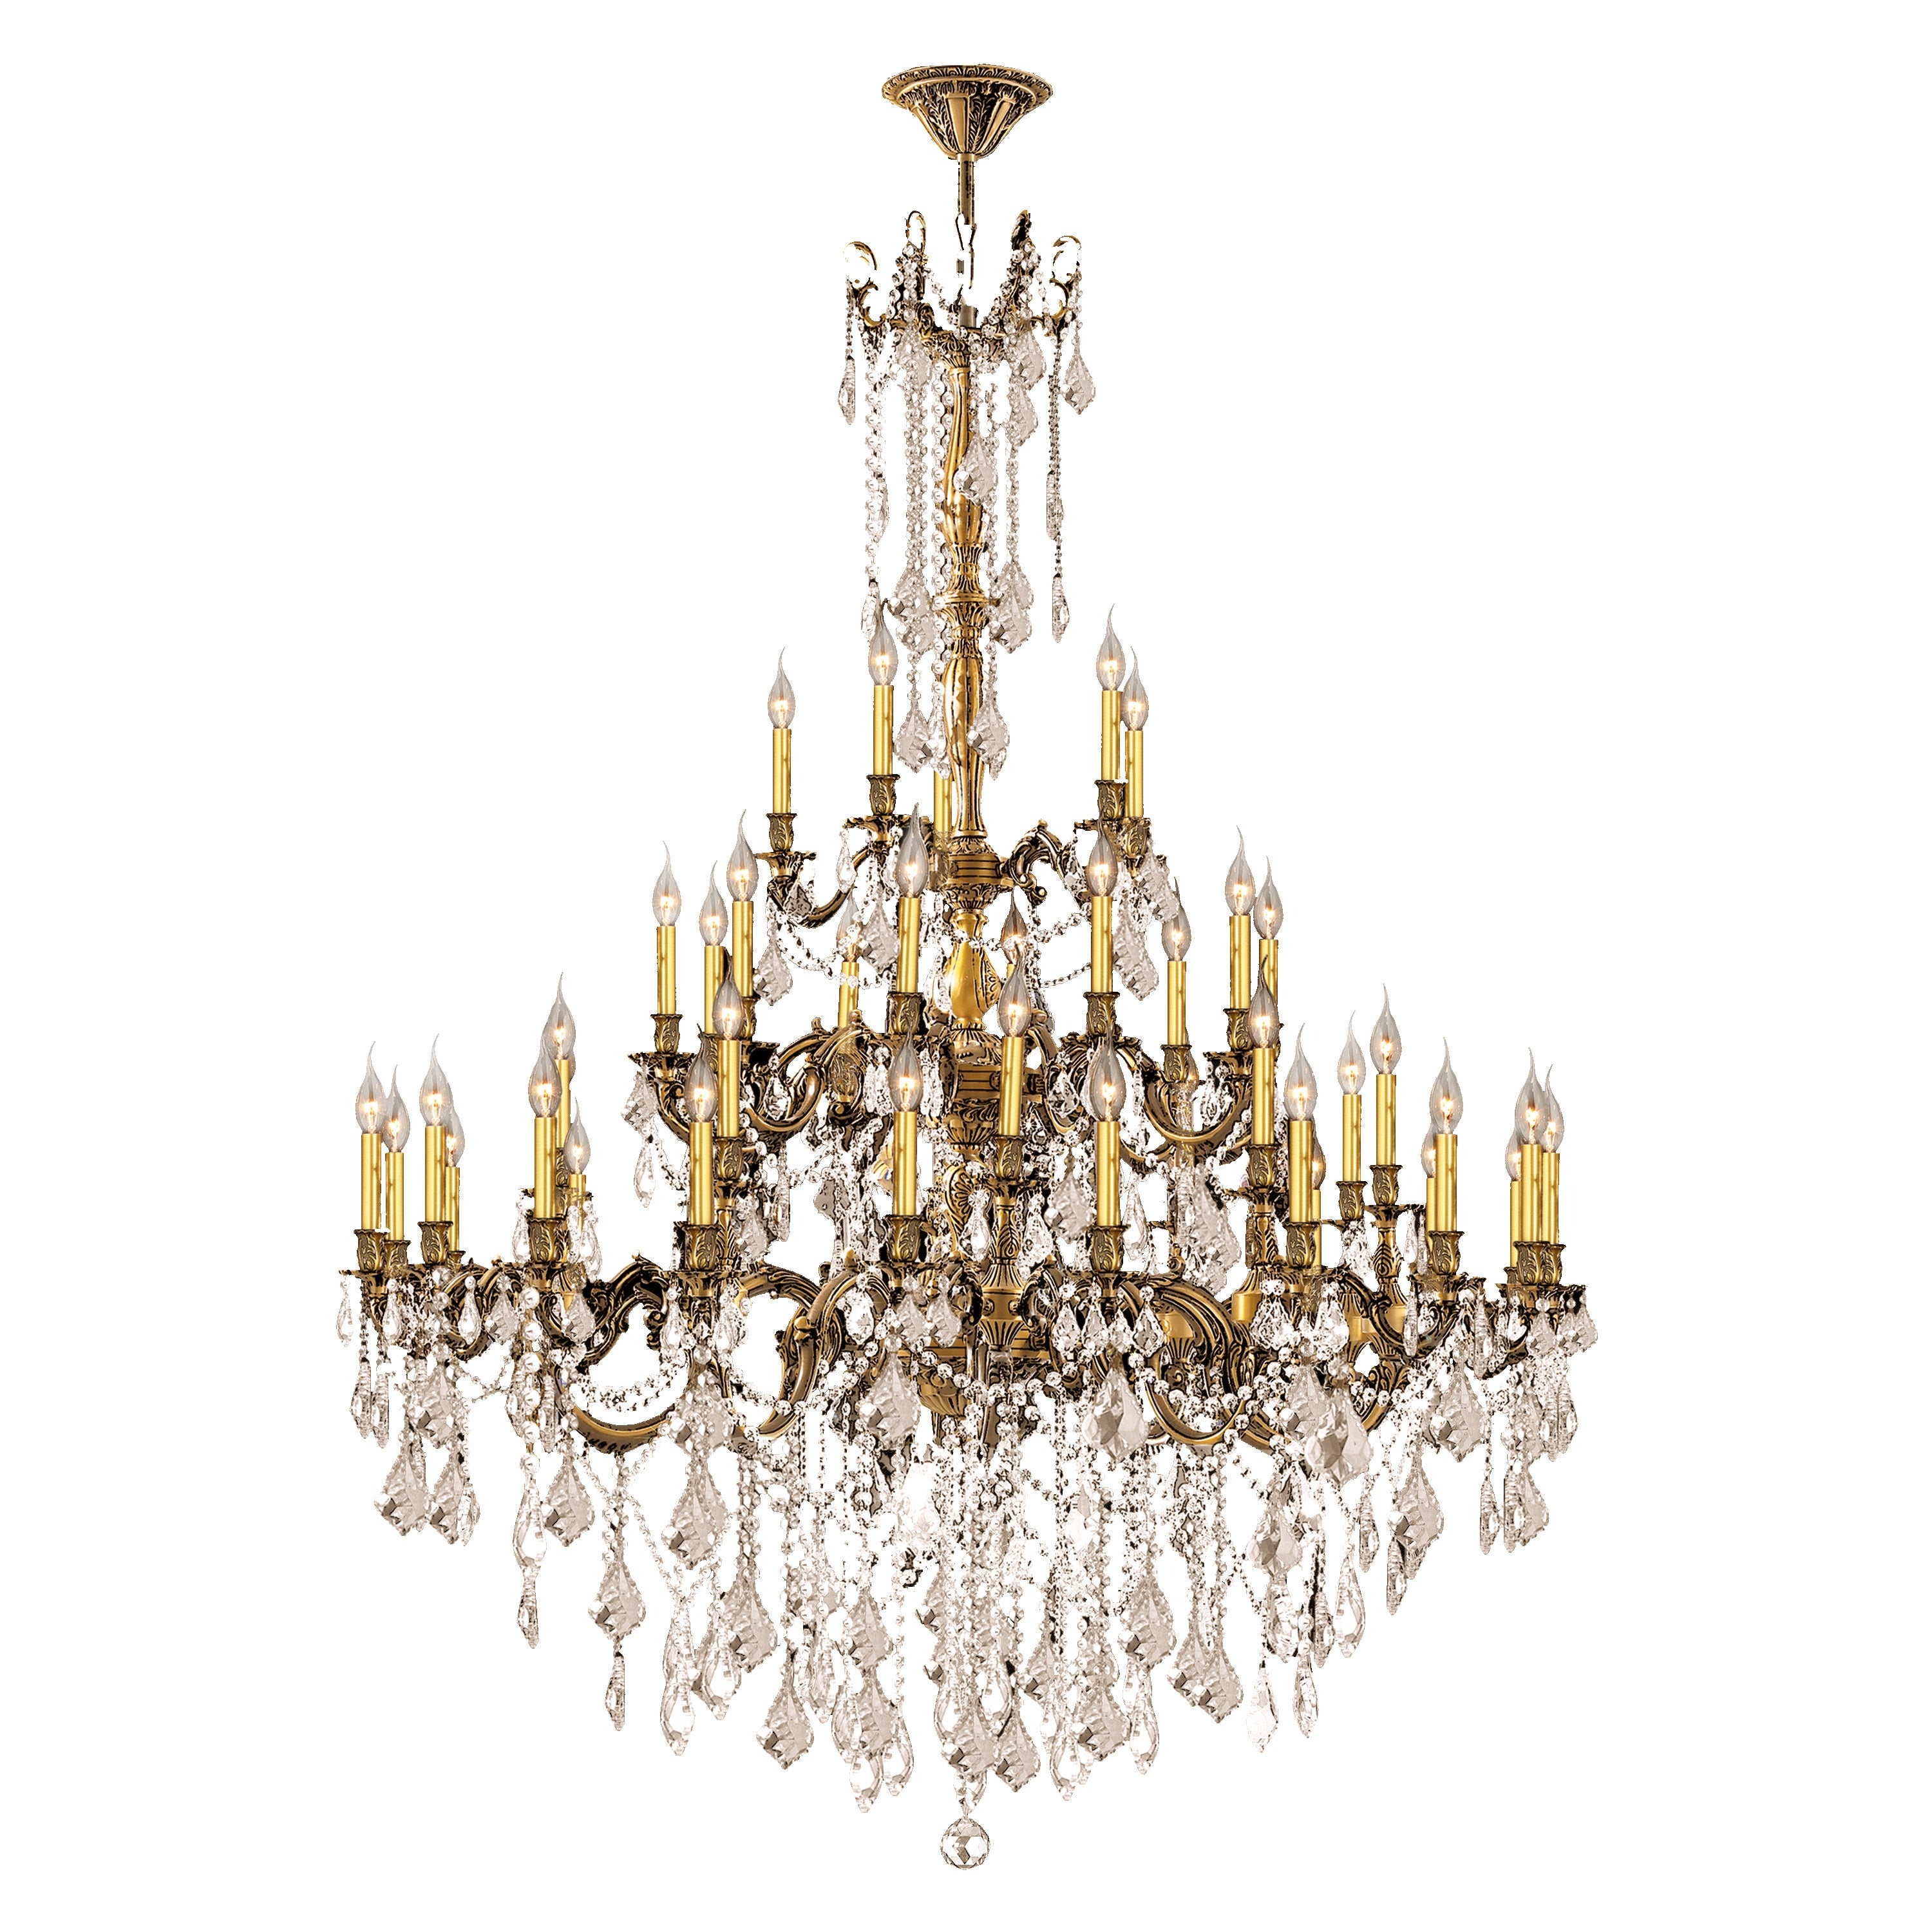 Italian elegance 45 light antique bronze finish and golden teak italian elegance 45 light antique bronze finish and golden teak crystal traditional chandelier large free shipping today overstock 17839141 arubaitofo Image collections